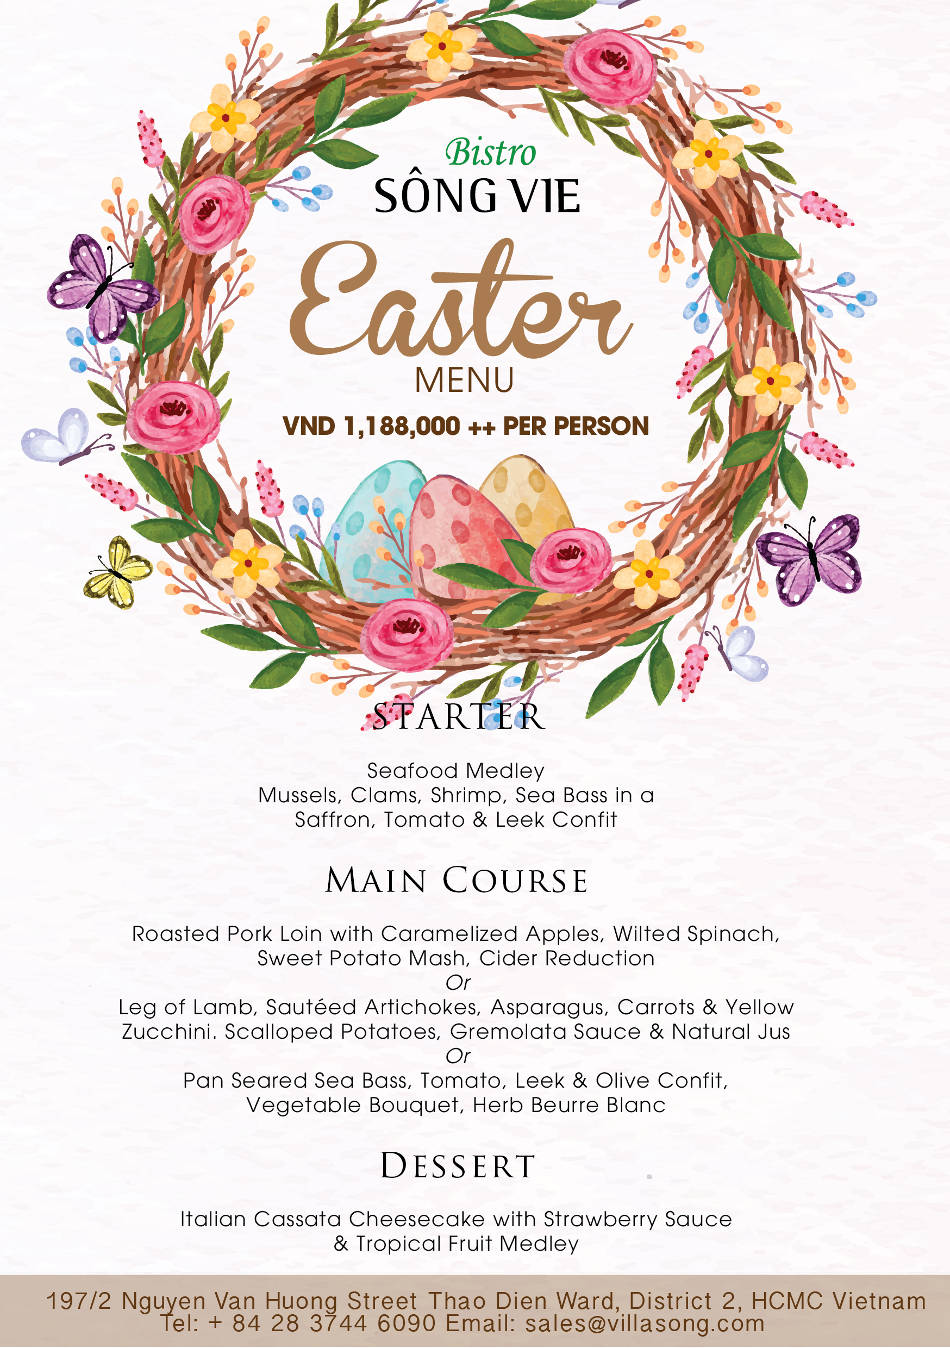 Easter menu at Bistro Song Vie - Villa Song Saigon